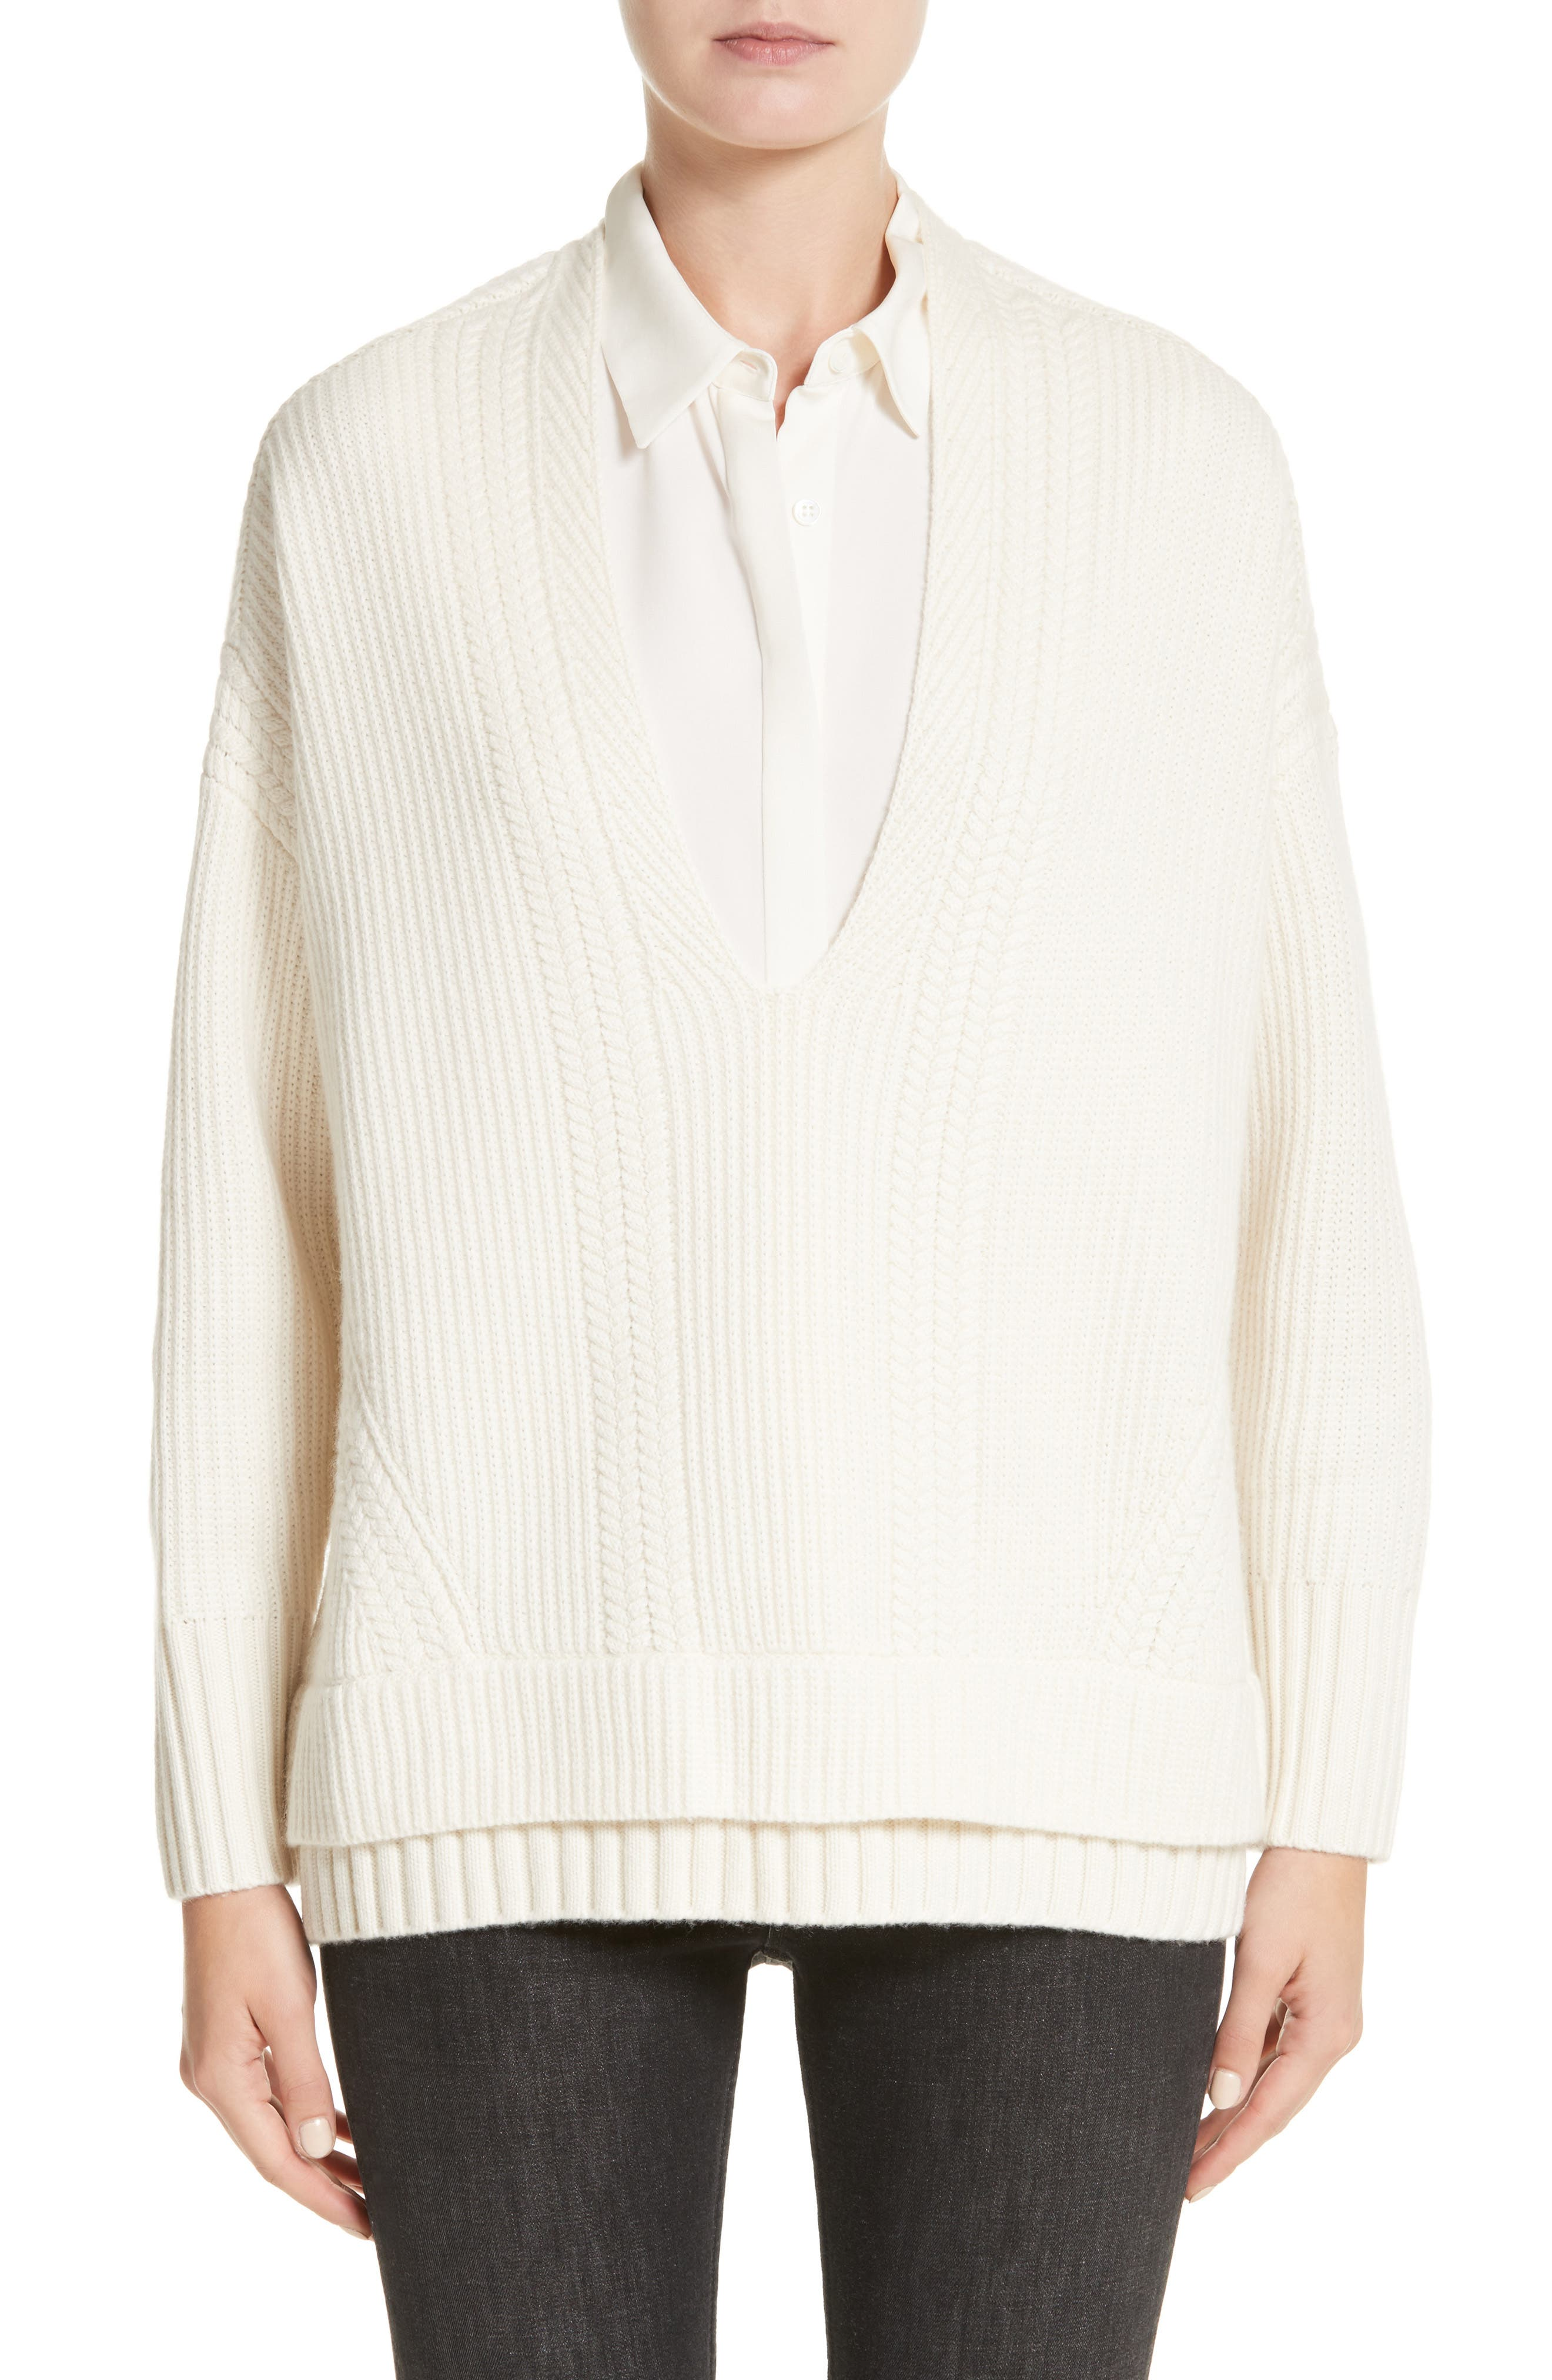 Santerno Wool & Cashmere Cable Knit Sweater,                             Main thumbnail 1, color,                             Natural White